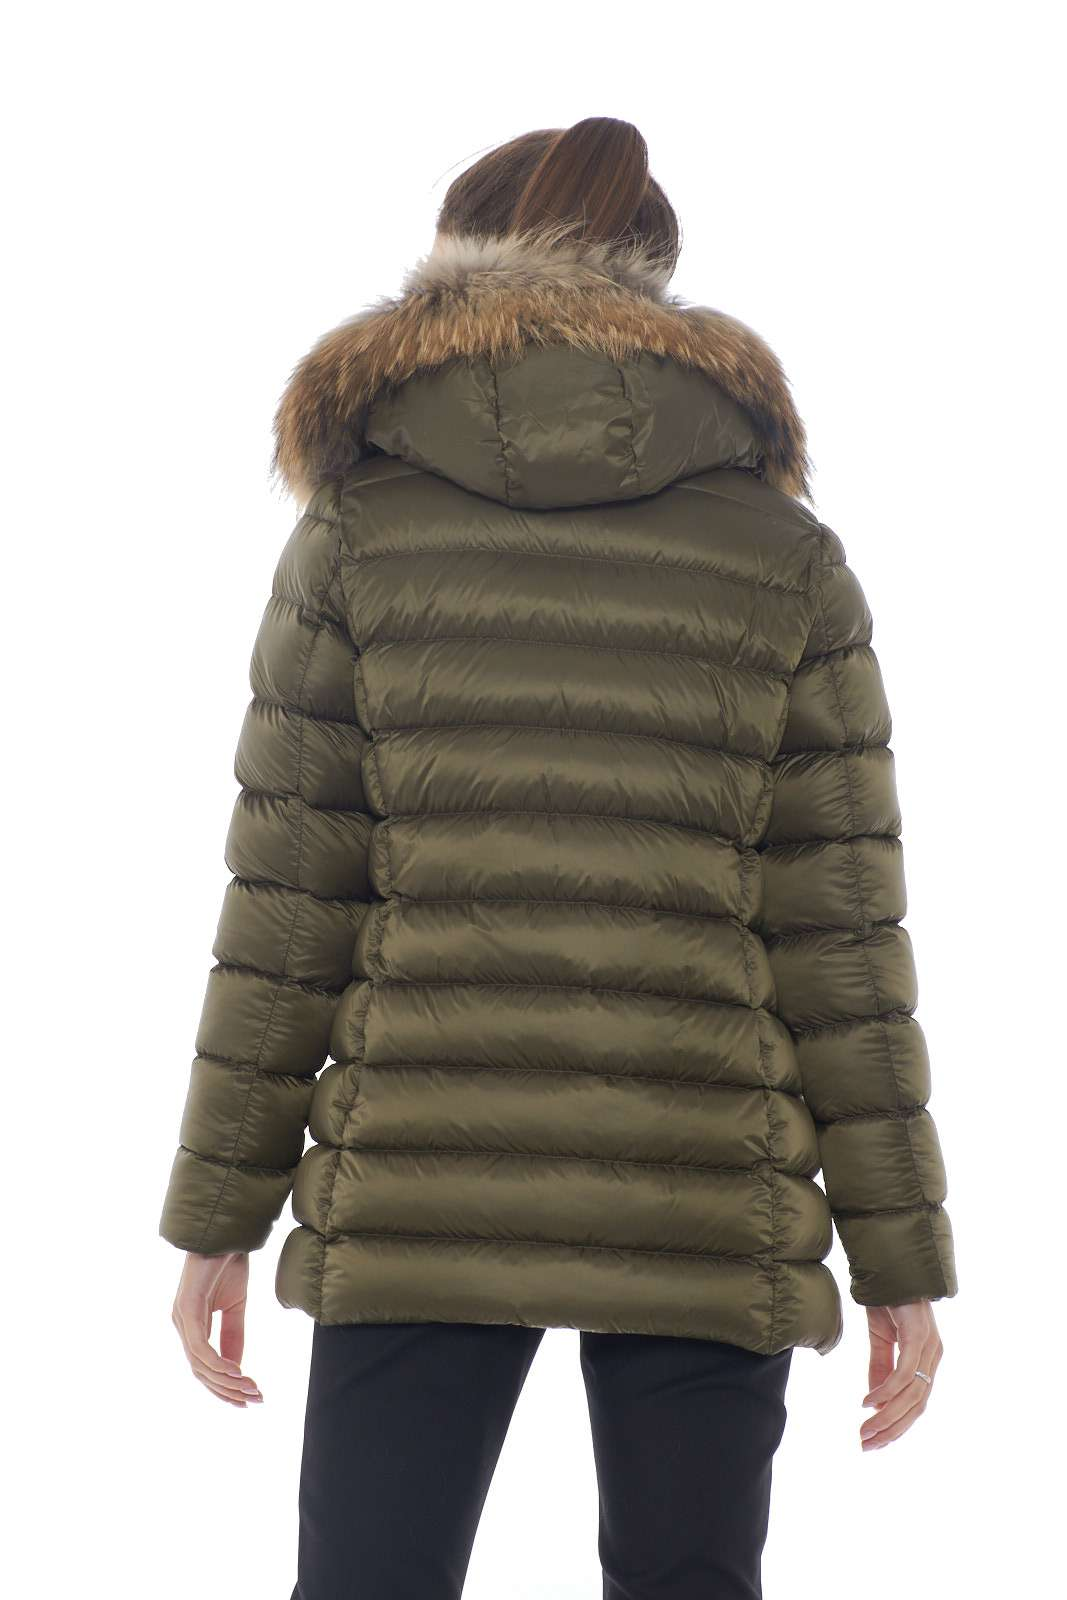 https://www.parmax.com/media/catalog/product/a/i/AI-outlet_parmax-parka-donna-Woolrich-WWCPS2760-G.jpg